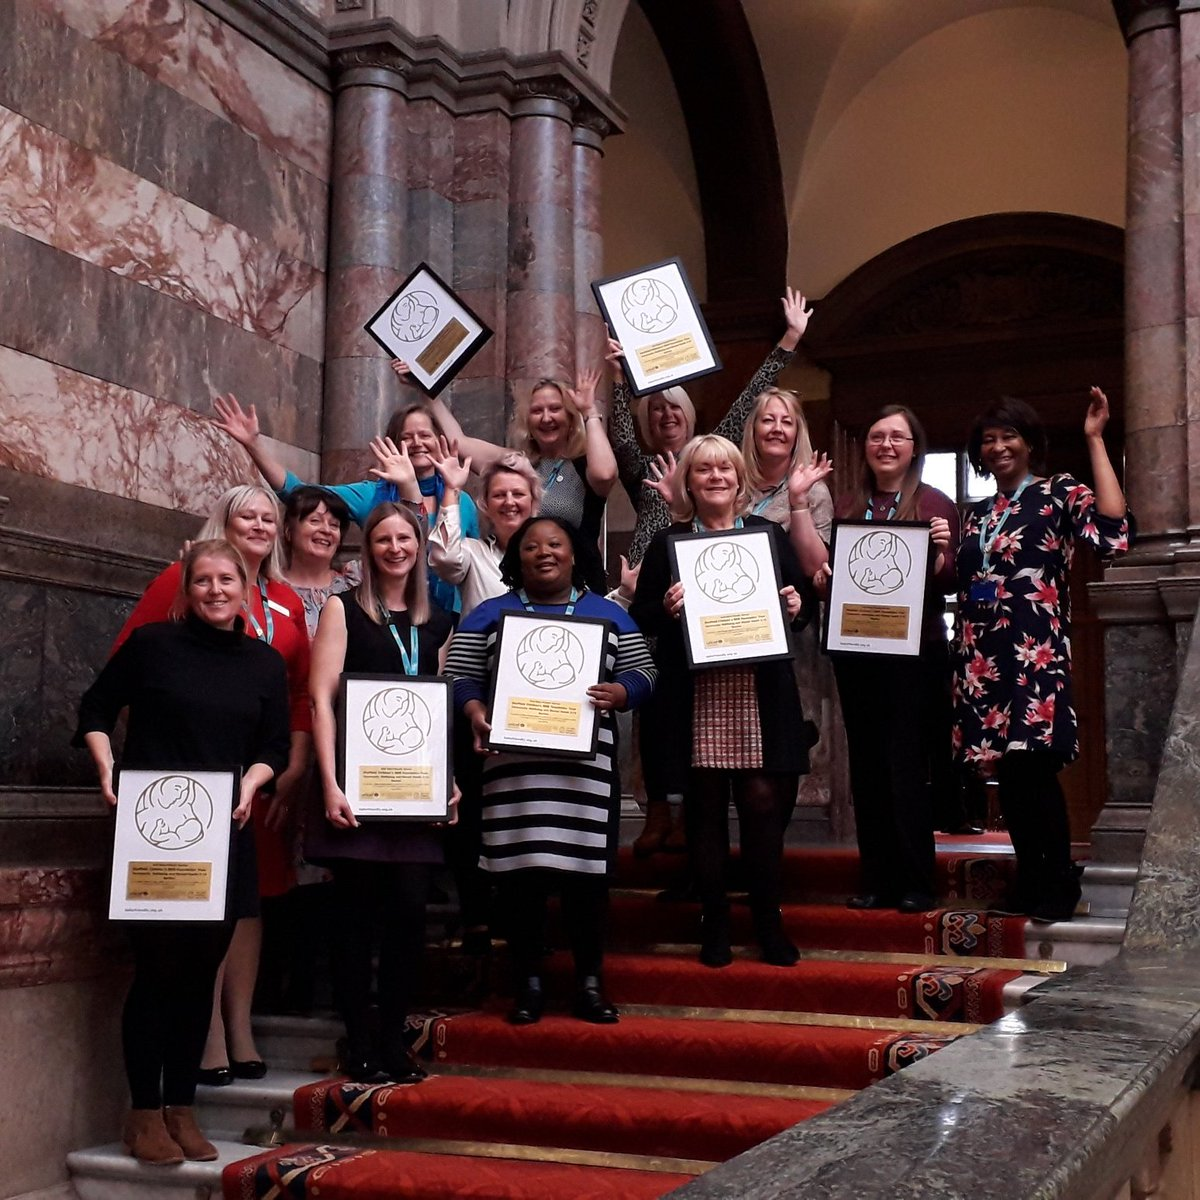 On #WorldBreastfeedingWeek we're taking a look back to last year when our 0-19 Health Visiting Services and  @SheffCouncil were both been presented with @UNICEF's Baby Friendly Initiative Gold Award.  These photos were taken before social distancing measures were introduced.pic.twitter.com/AXkPuGCG3x